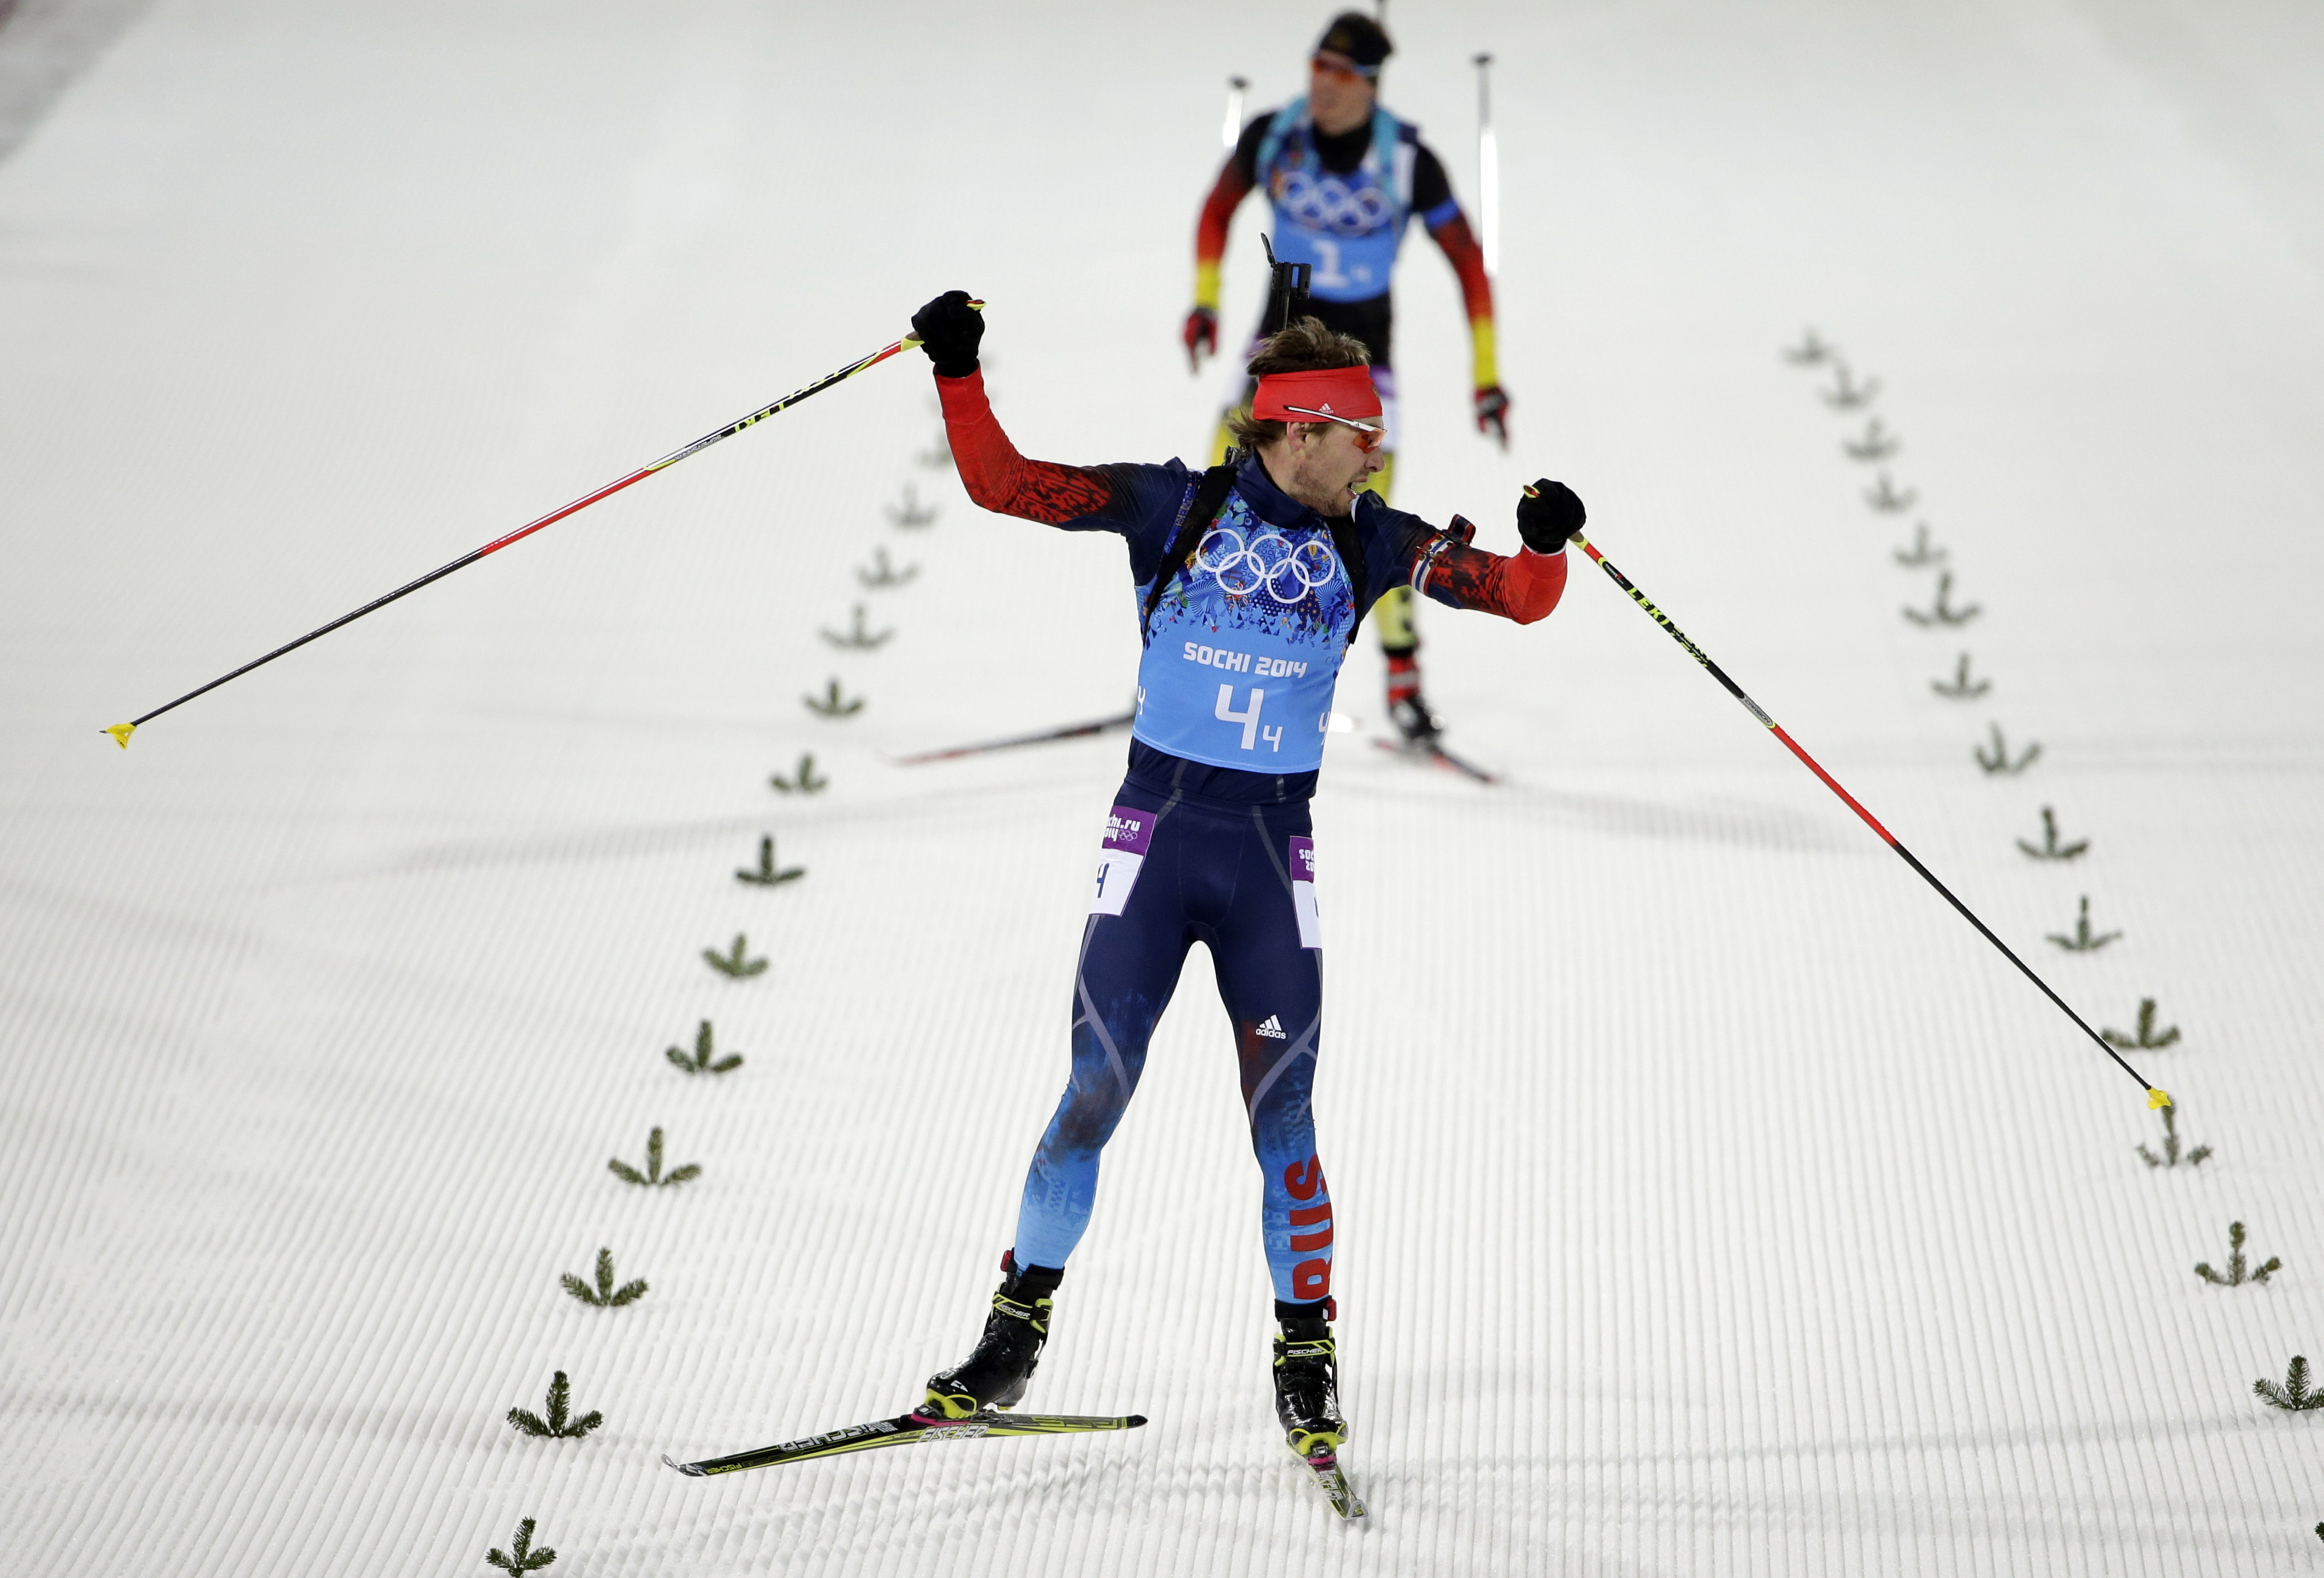 Russia's Anton Shipulin celebrates as he looks back at silver medalist Germany's Simon Schempp, on his way to win the gold in the men's biathlon 4x7.5K relay at the 2014 Winter Olympics, Saturday, Feb. 22, 2014, in Krasnaya Polyana, Russia. (AP Photo/Felipe Dana)